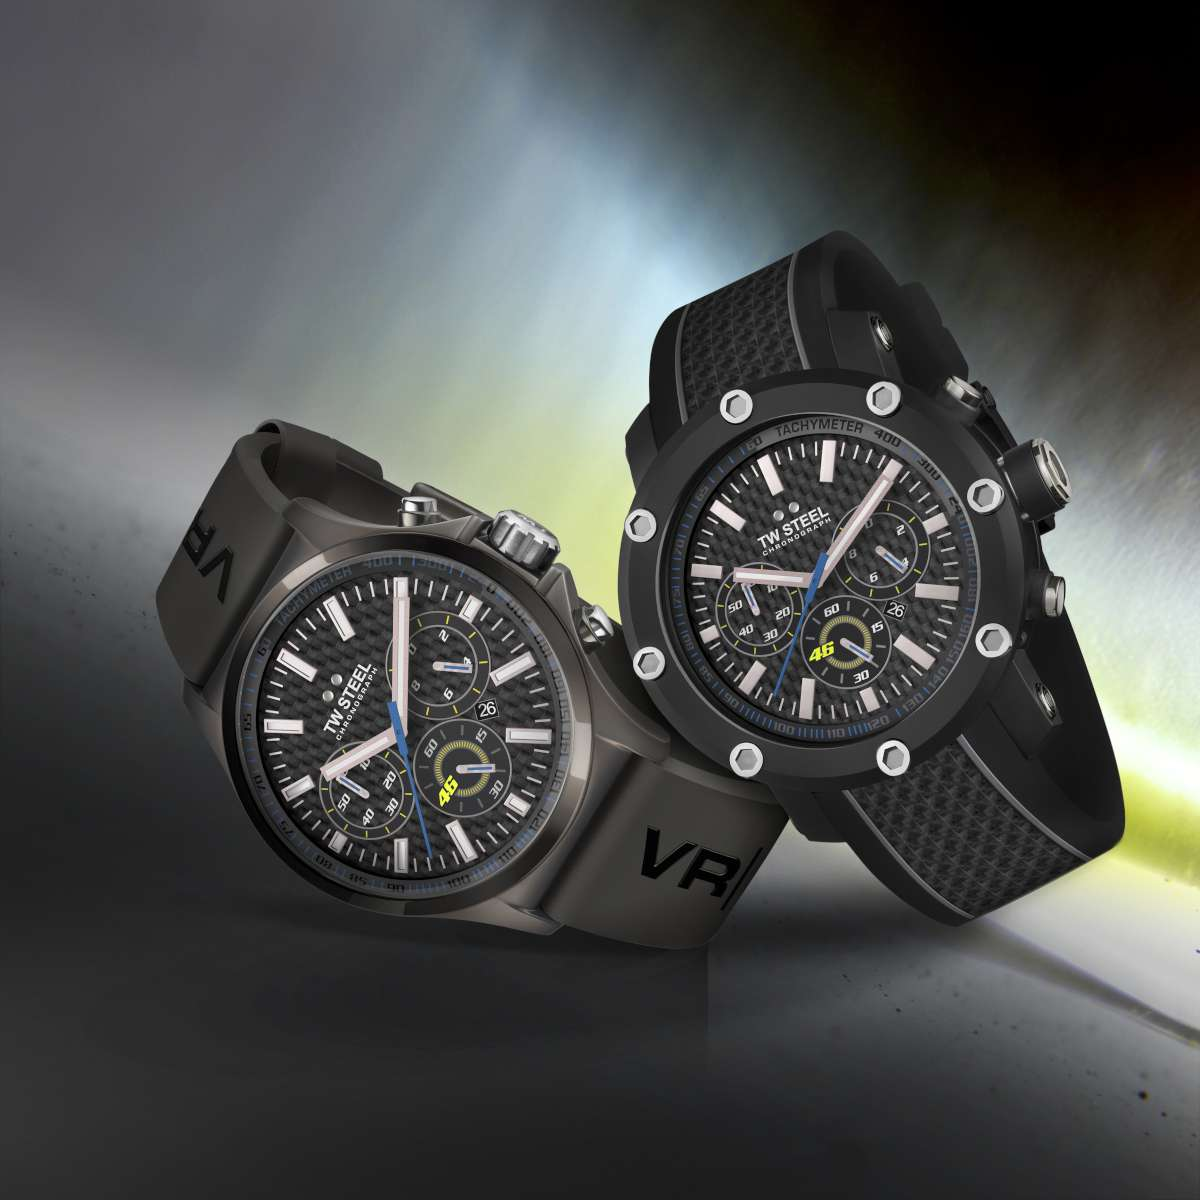 The TW Steel VR|46 / Yamaha Factory Racing watches, Pilot (left) and Tech (right)